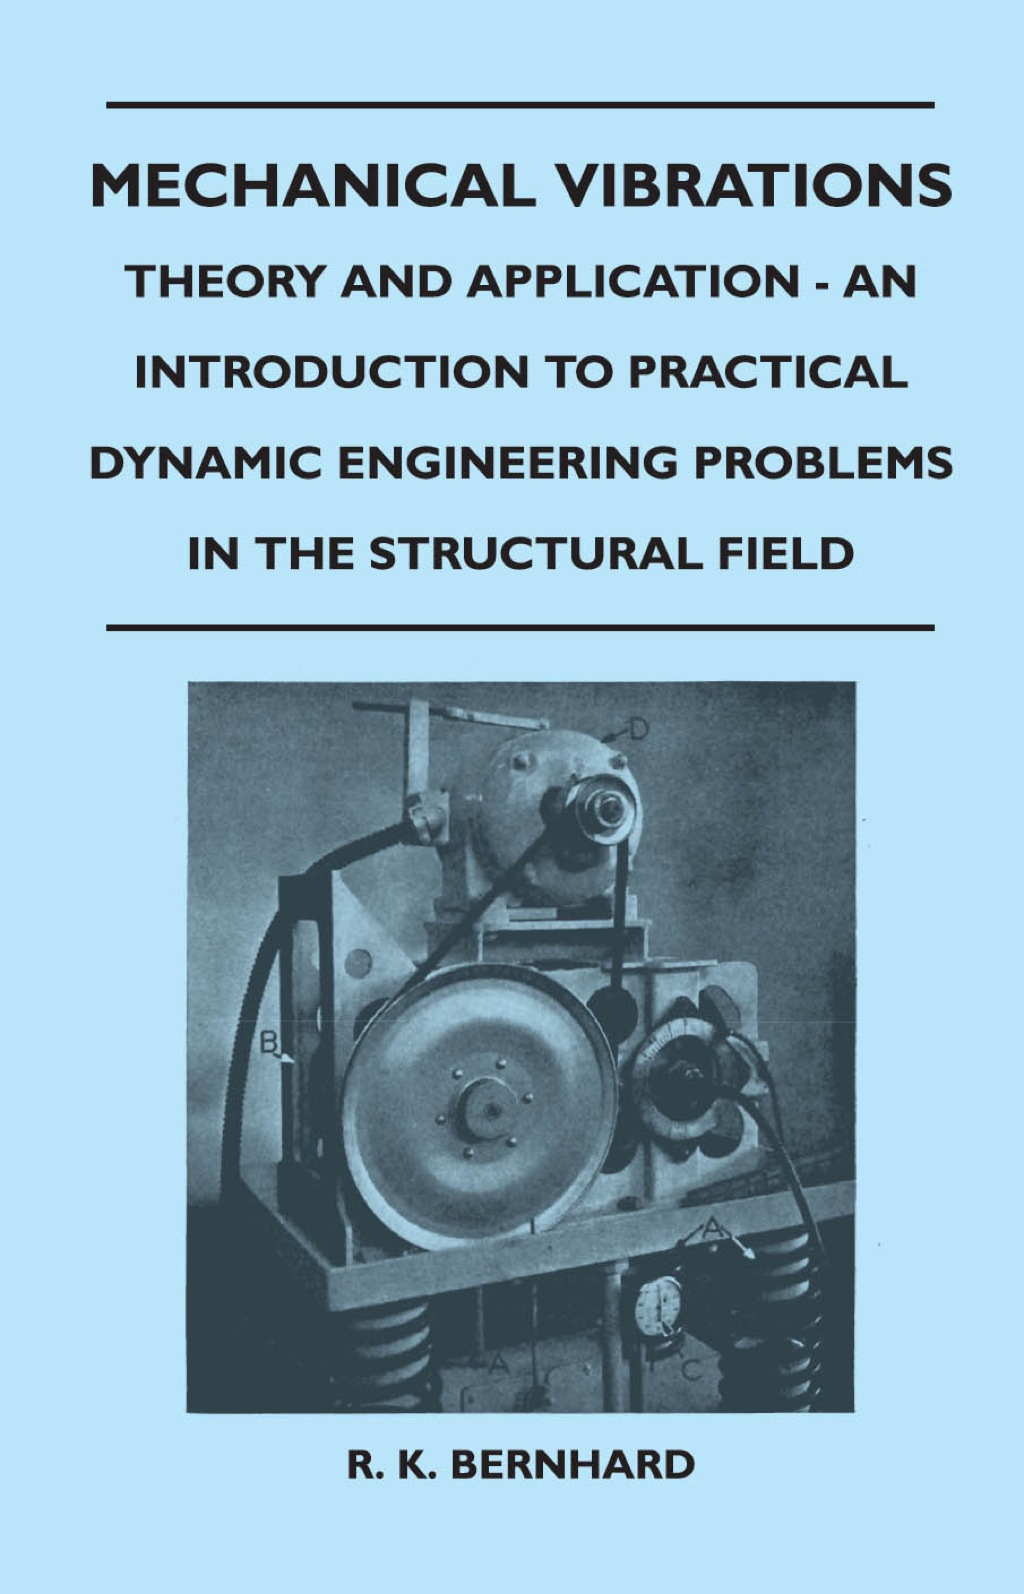 Mechanical Vibrations - Theory And Application - An Introduction To Practical Dynamic Engineering Problems In The Structural Field (ebook) eBooks